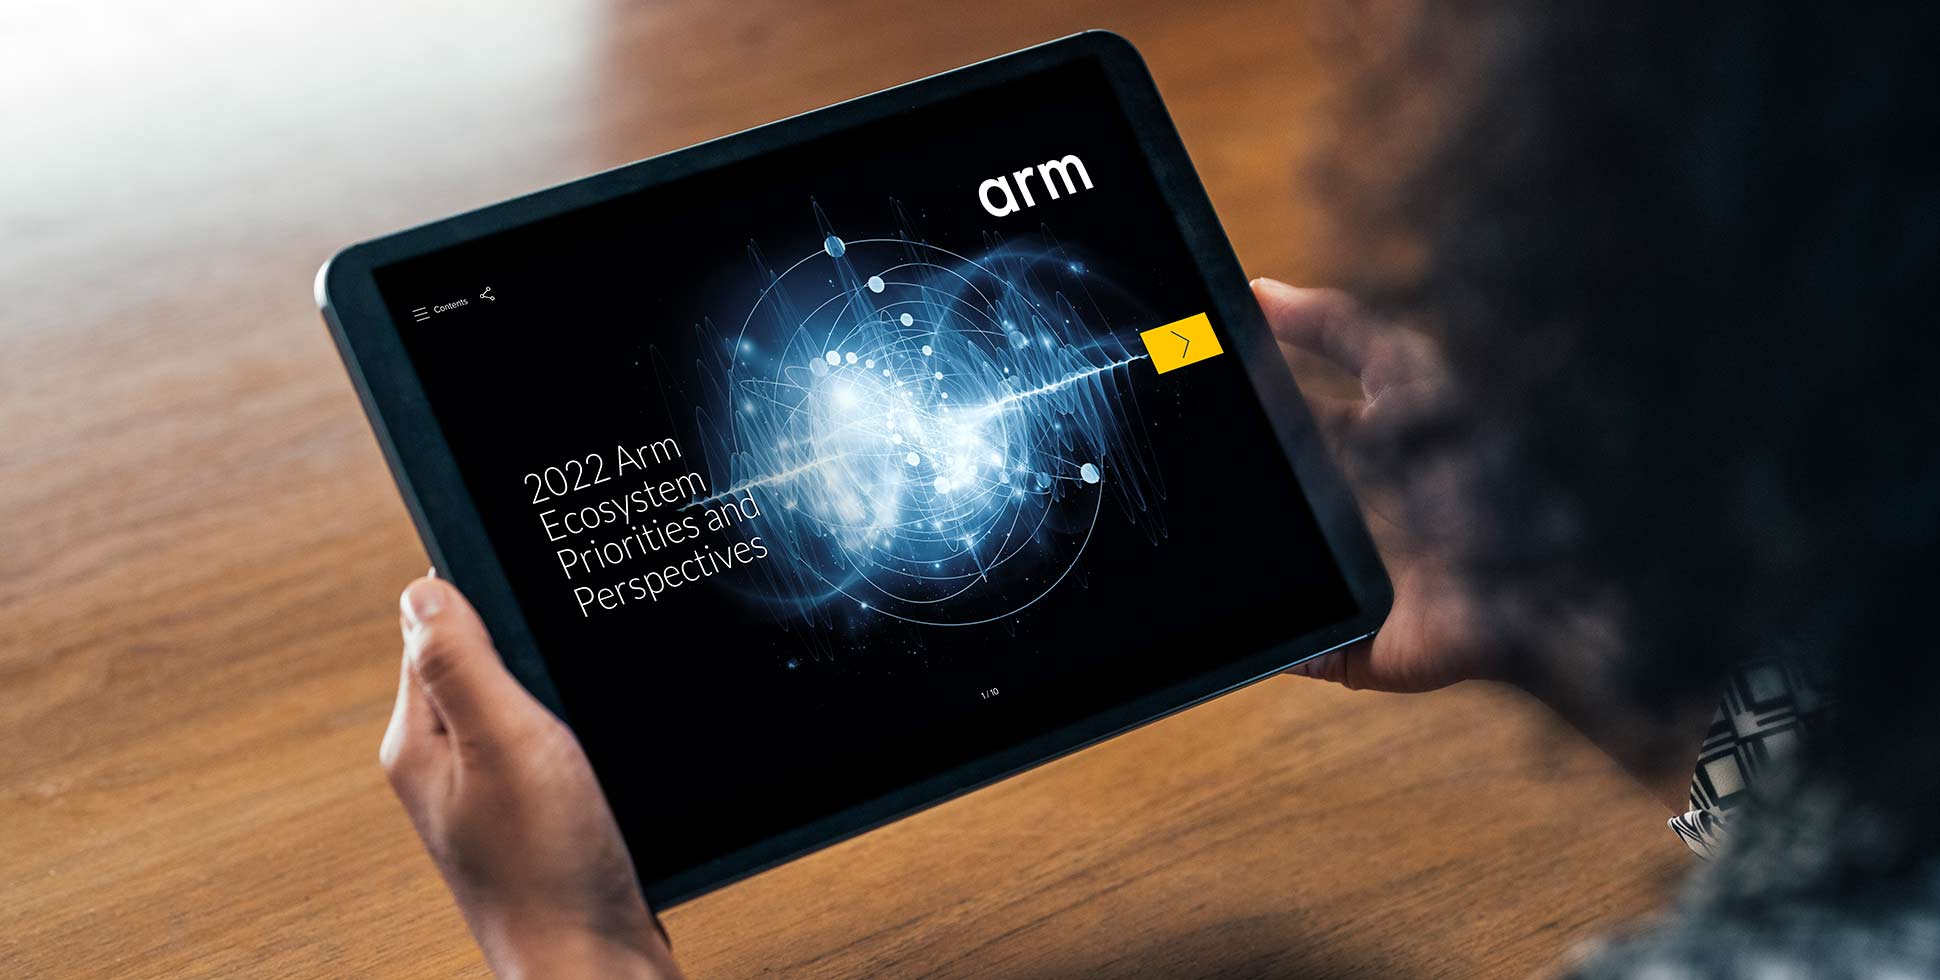 Arm Ecosystem Priorities and Perspectives: Read the Report